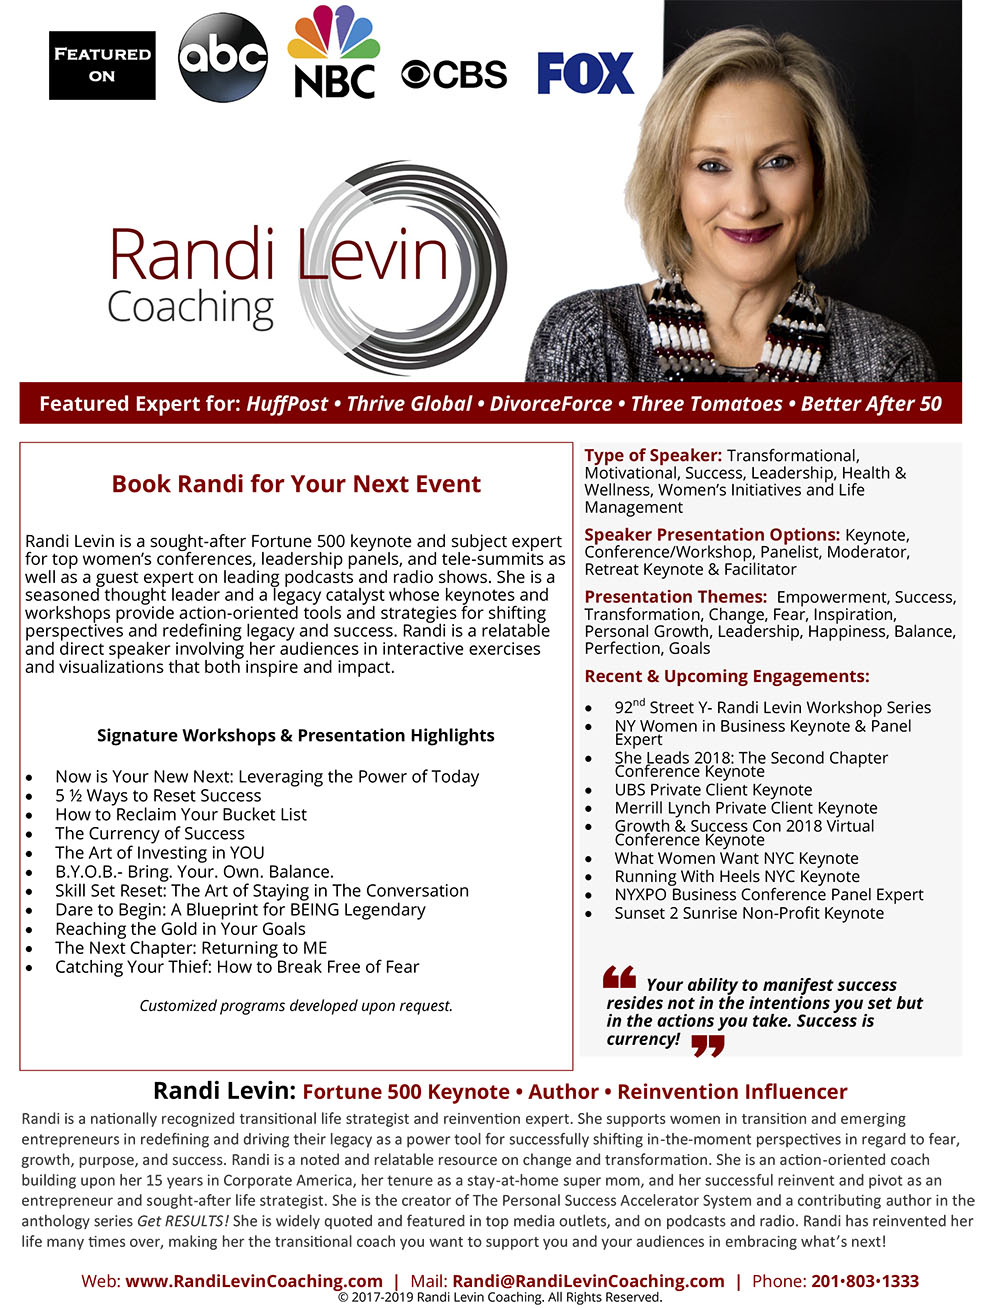 Please Click Below For A Full Size Downloadable Speaker One Sheet